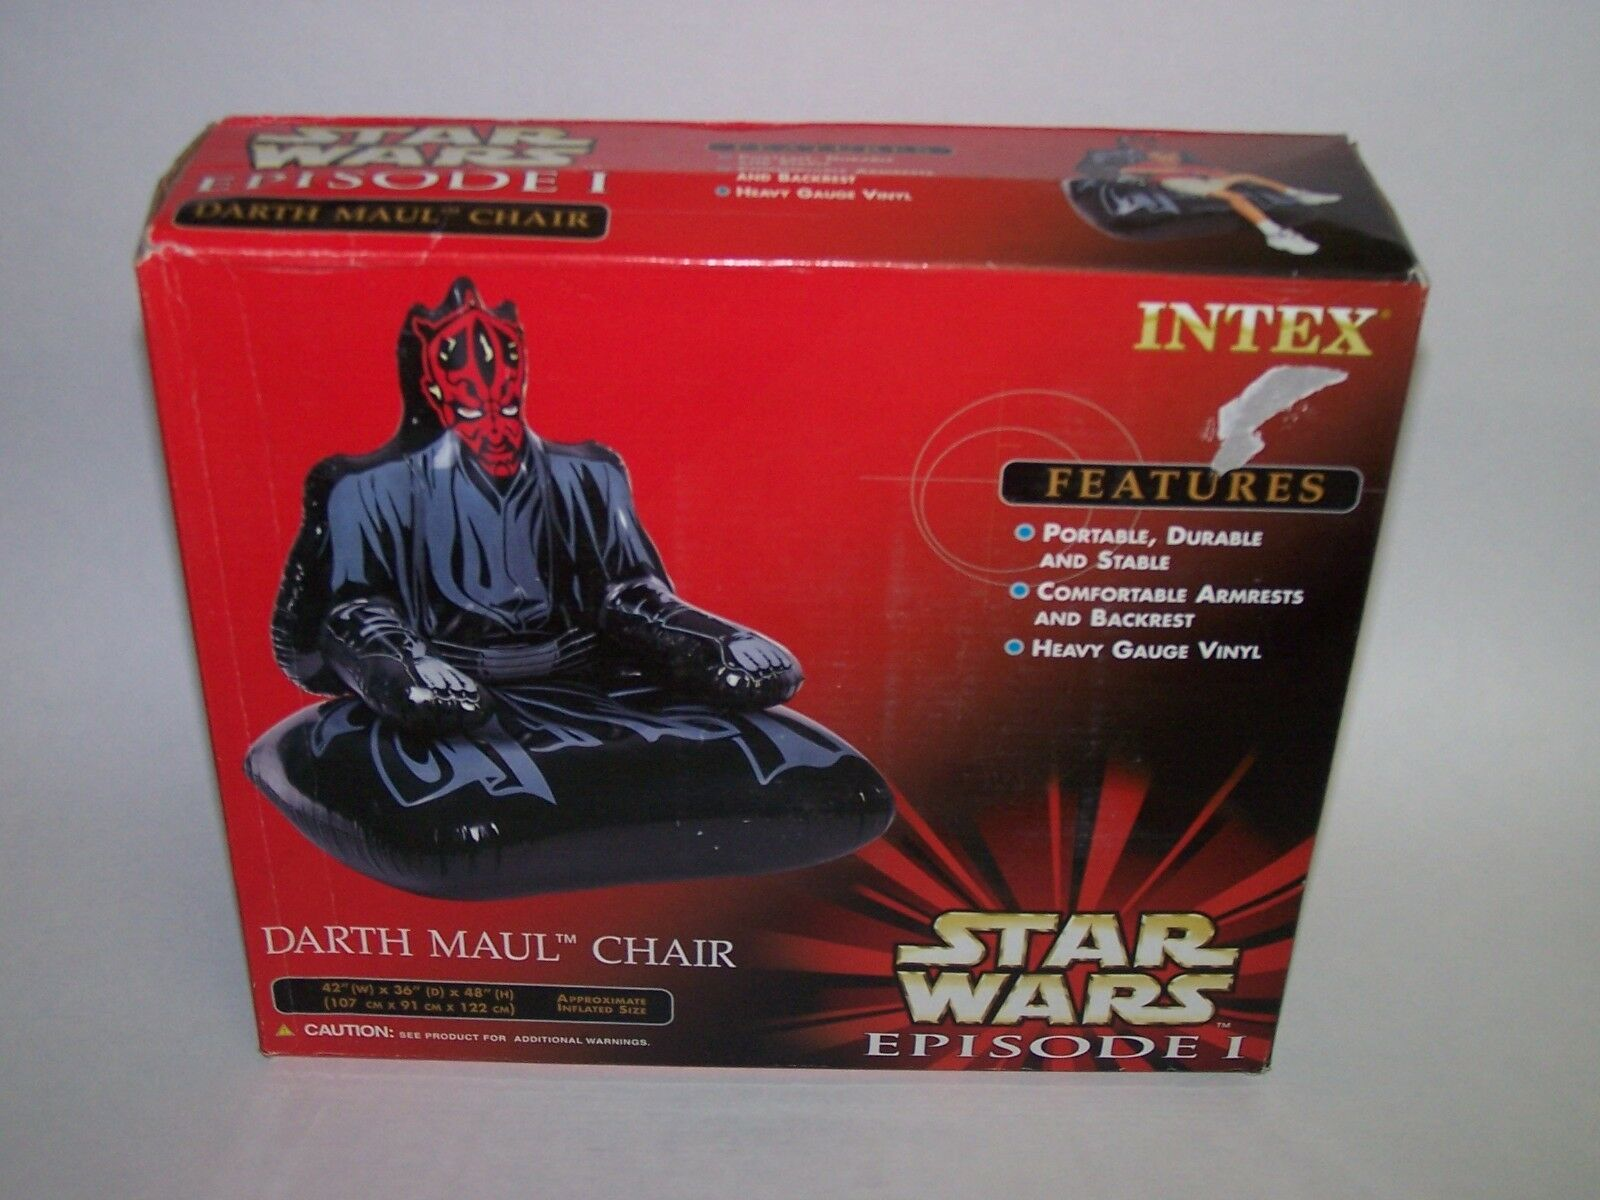 Star Wars Darth Maul Gonflable Chaise épisode 1 Neuf dans sa boîte Sealed Intex